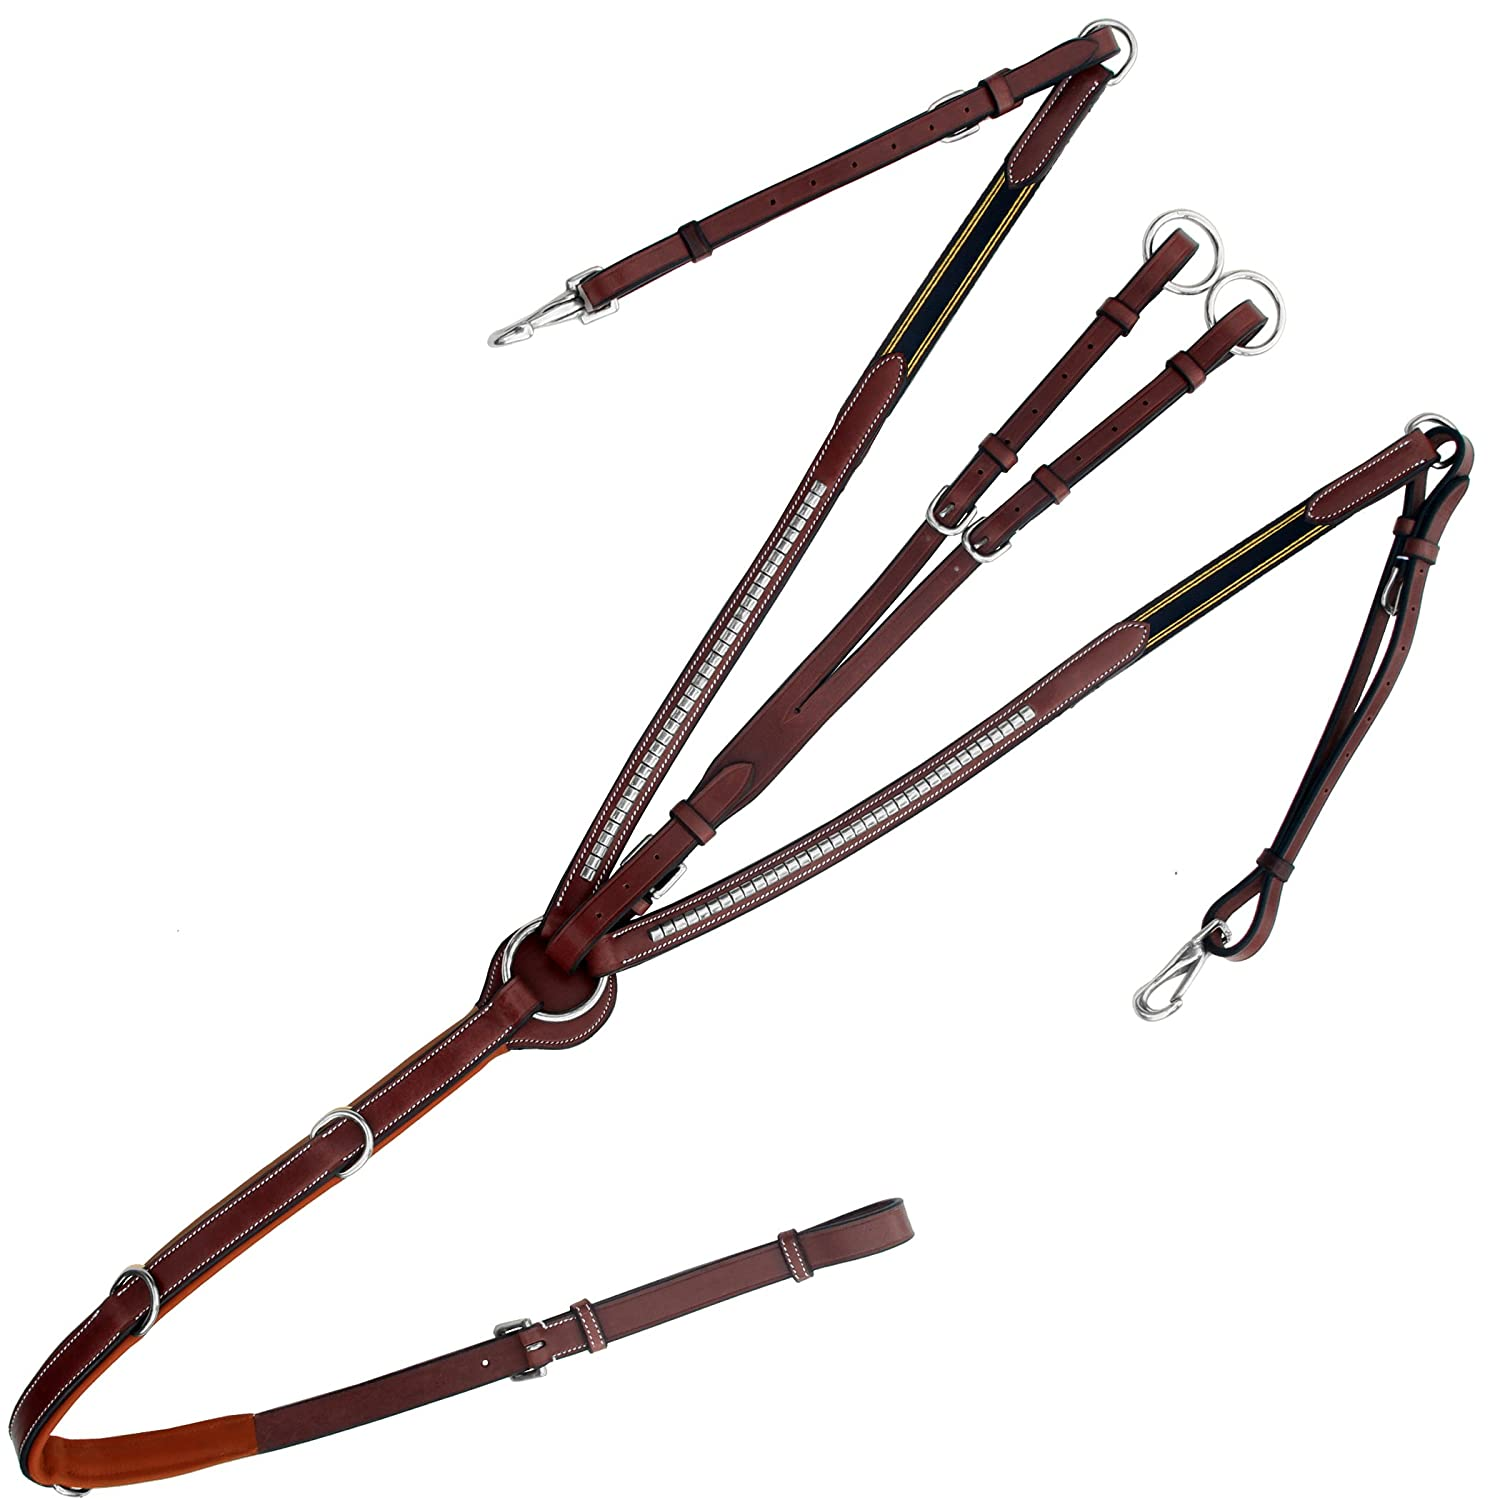 Oak Brown (Reddish Brown) Medium (Cob) Oak Brown (Reddish Brown) Medium (Cob) Exion Stainless Steel Clinched Padded Breast Plate with Running Attachment and Stainless Steel Buckles   Navy bluee Elastic with Yellow Lines   English Horse Riding Premium Tack